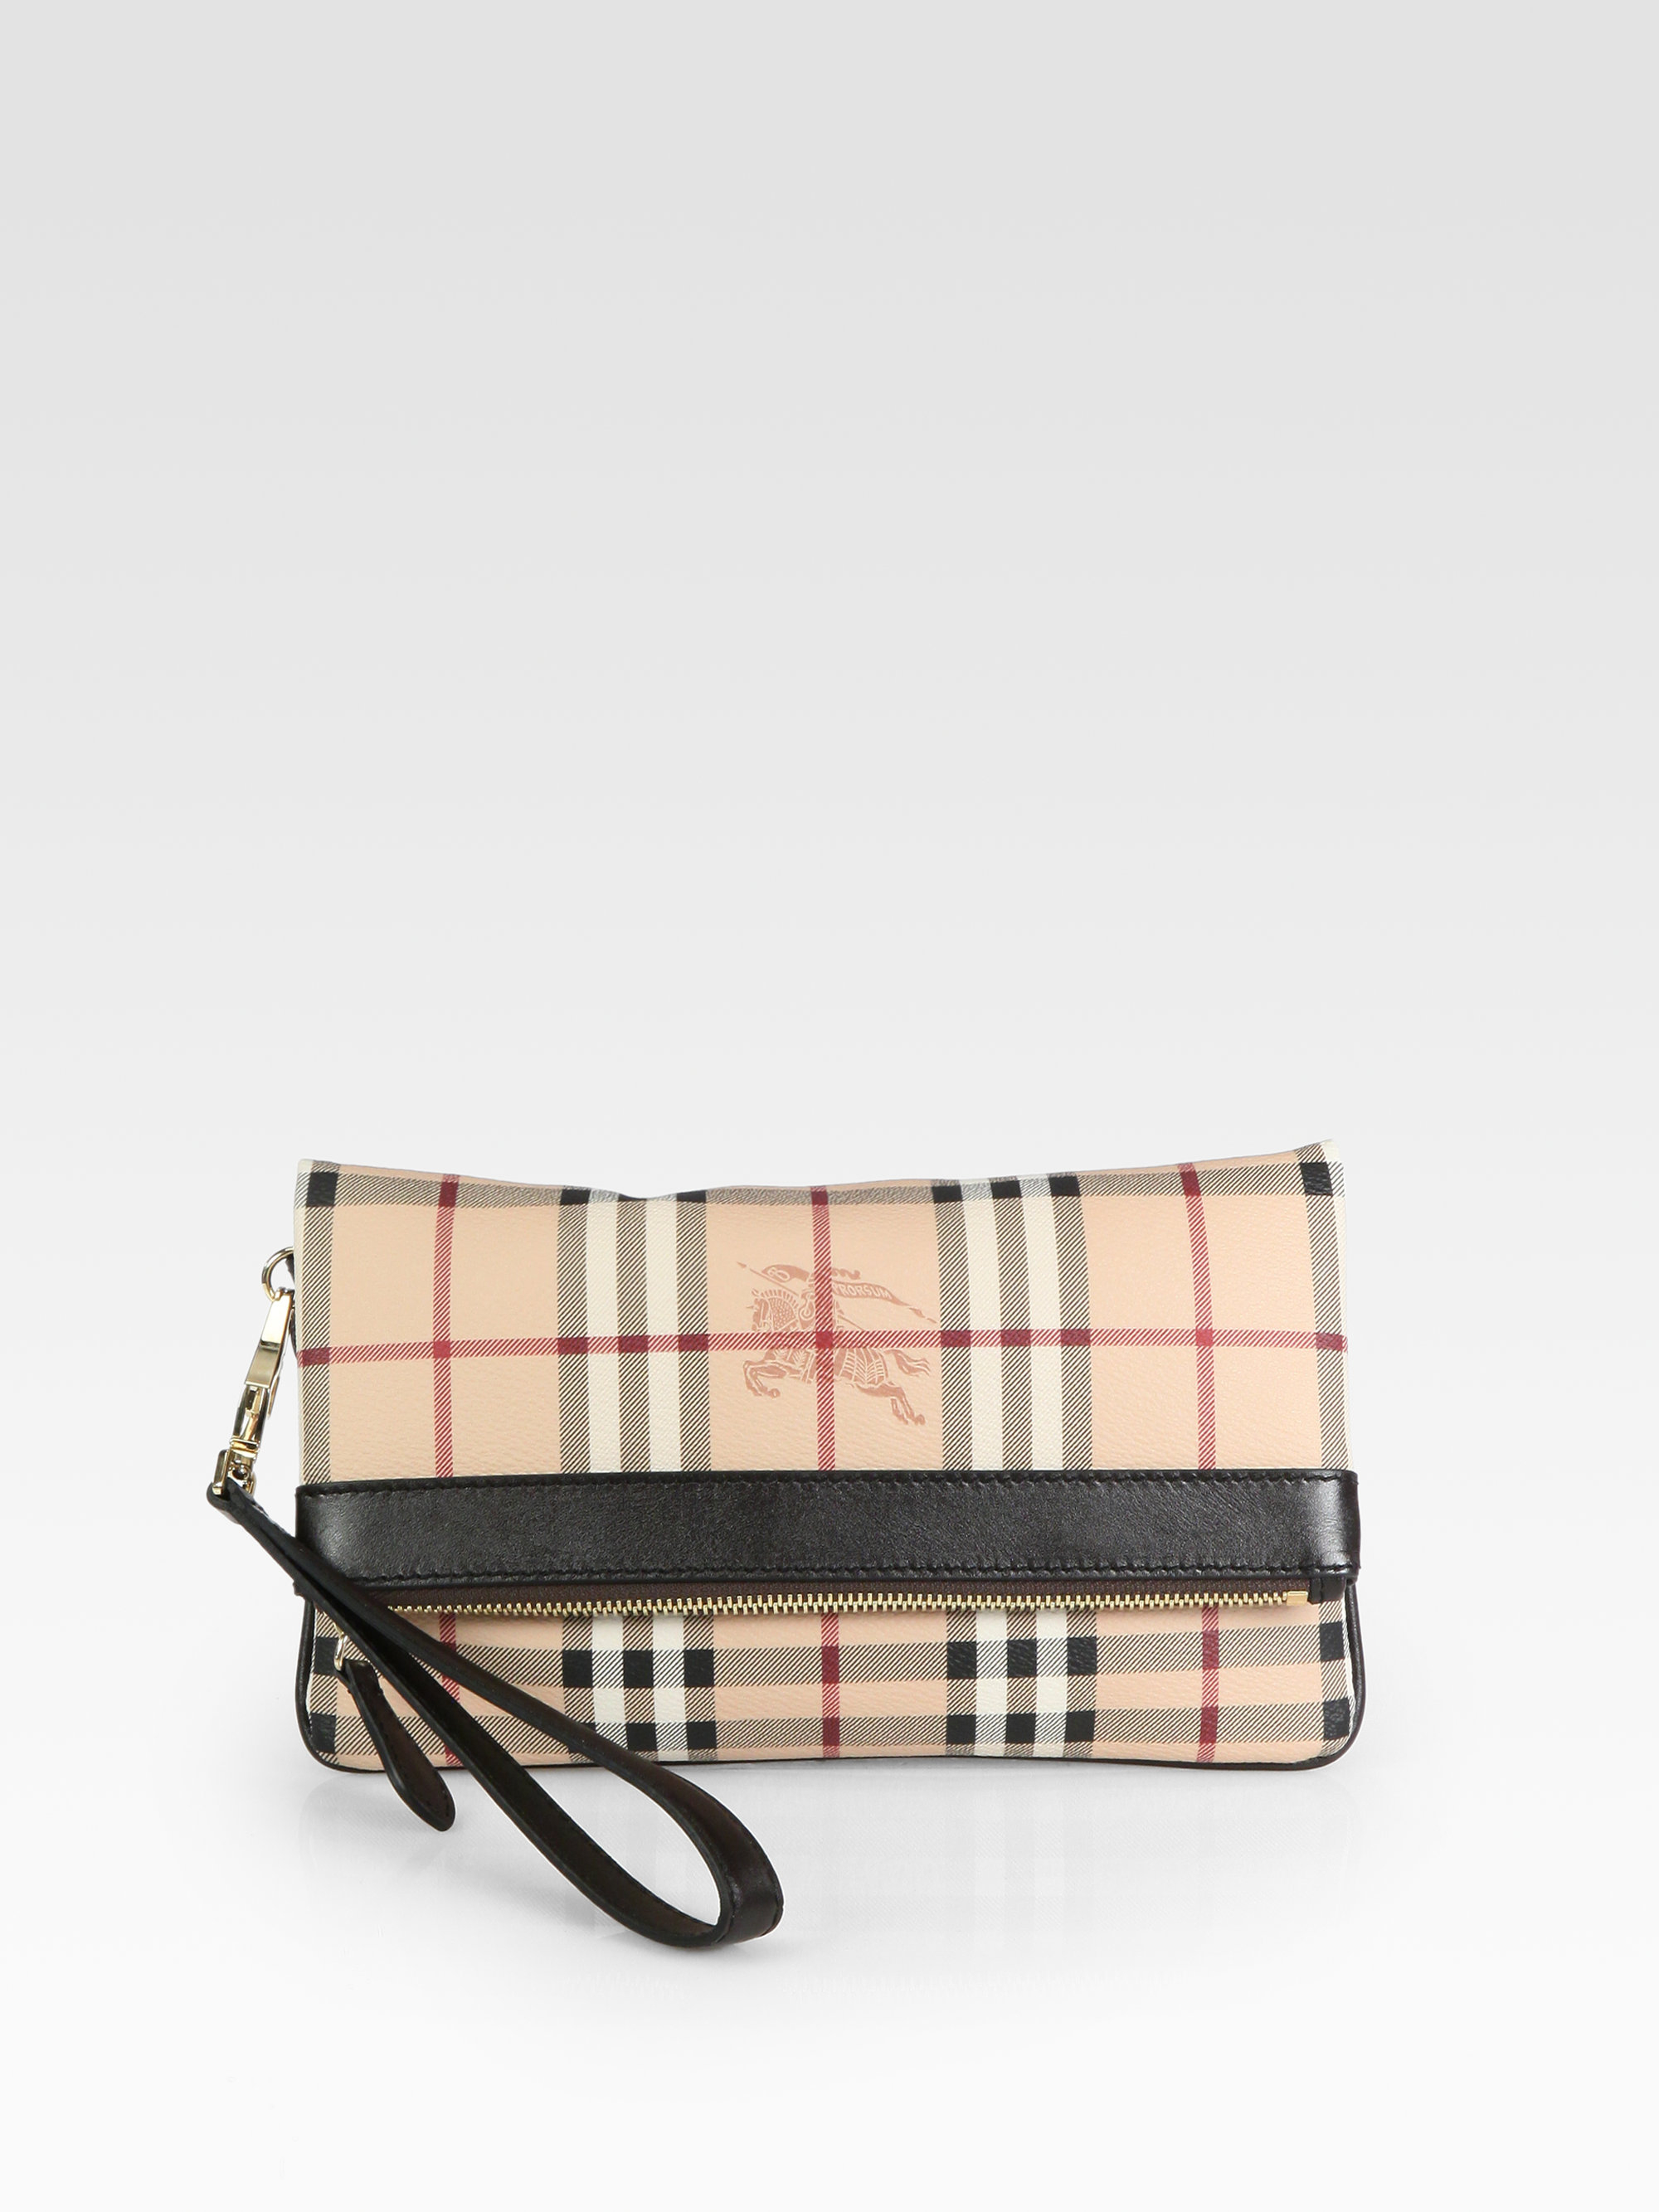 22db28d9638c Lyst - Burberry Adeline Clutch in Natural